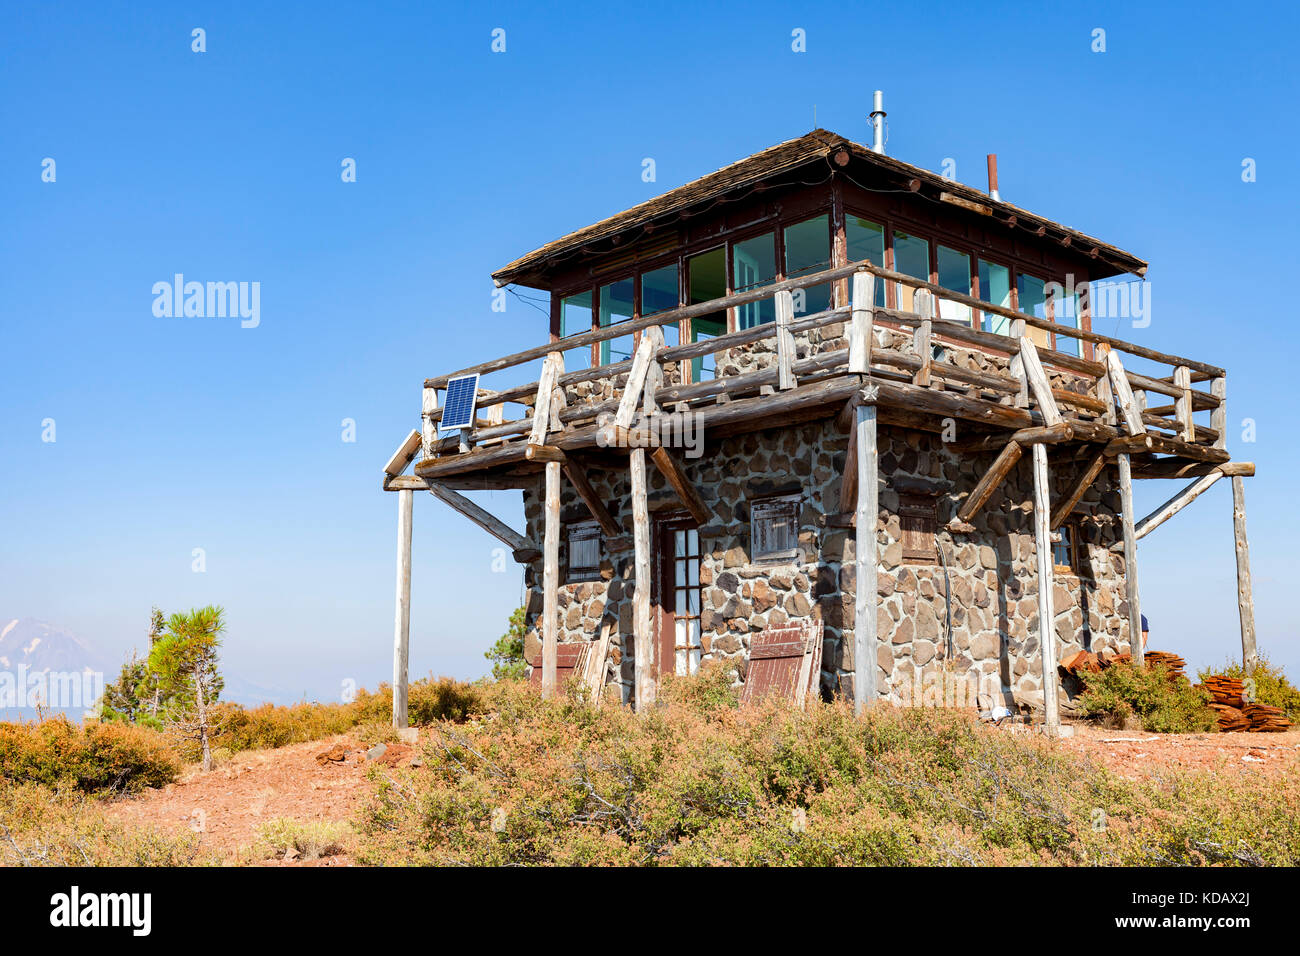 The Mt. Harkness fire lookout station sits atop Mt. Harkness in Lassen Volcanic National Park. - Stock Image